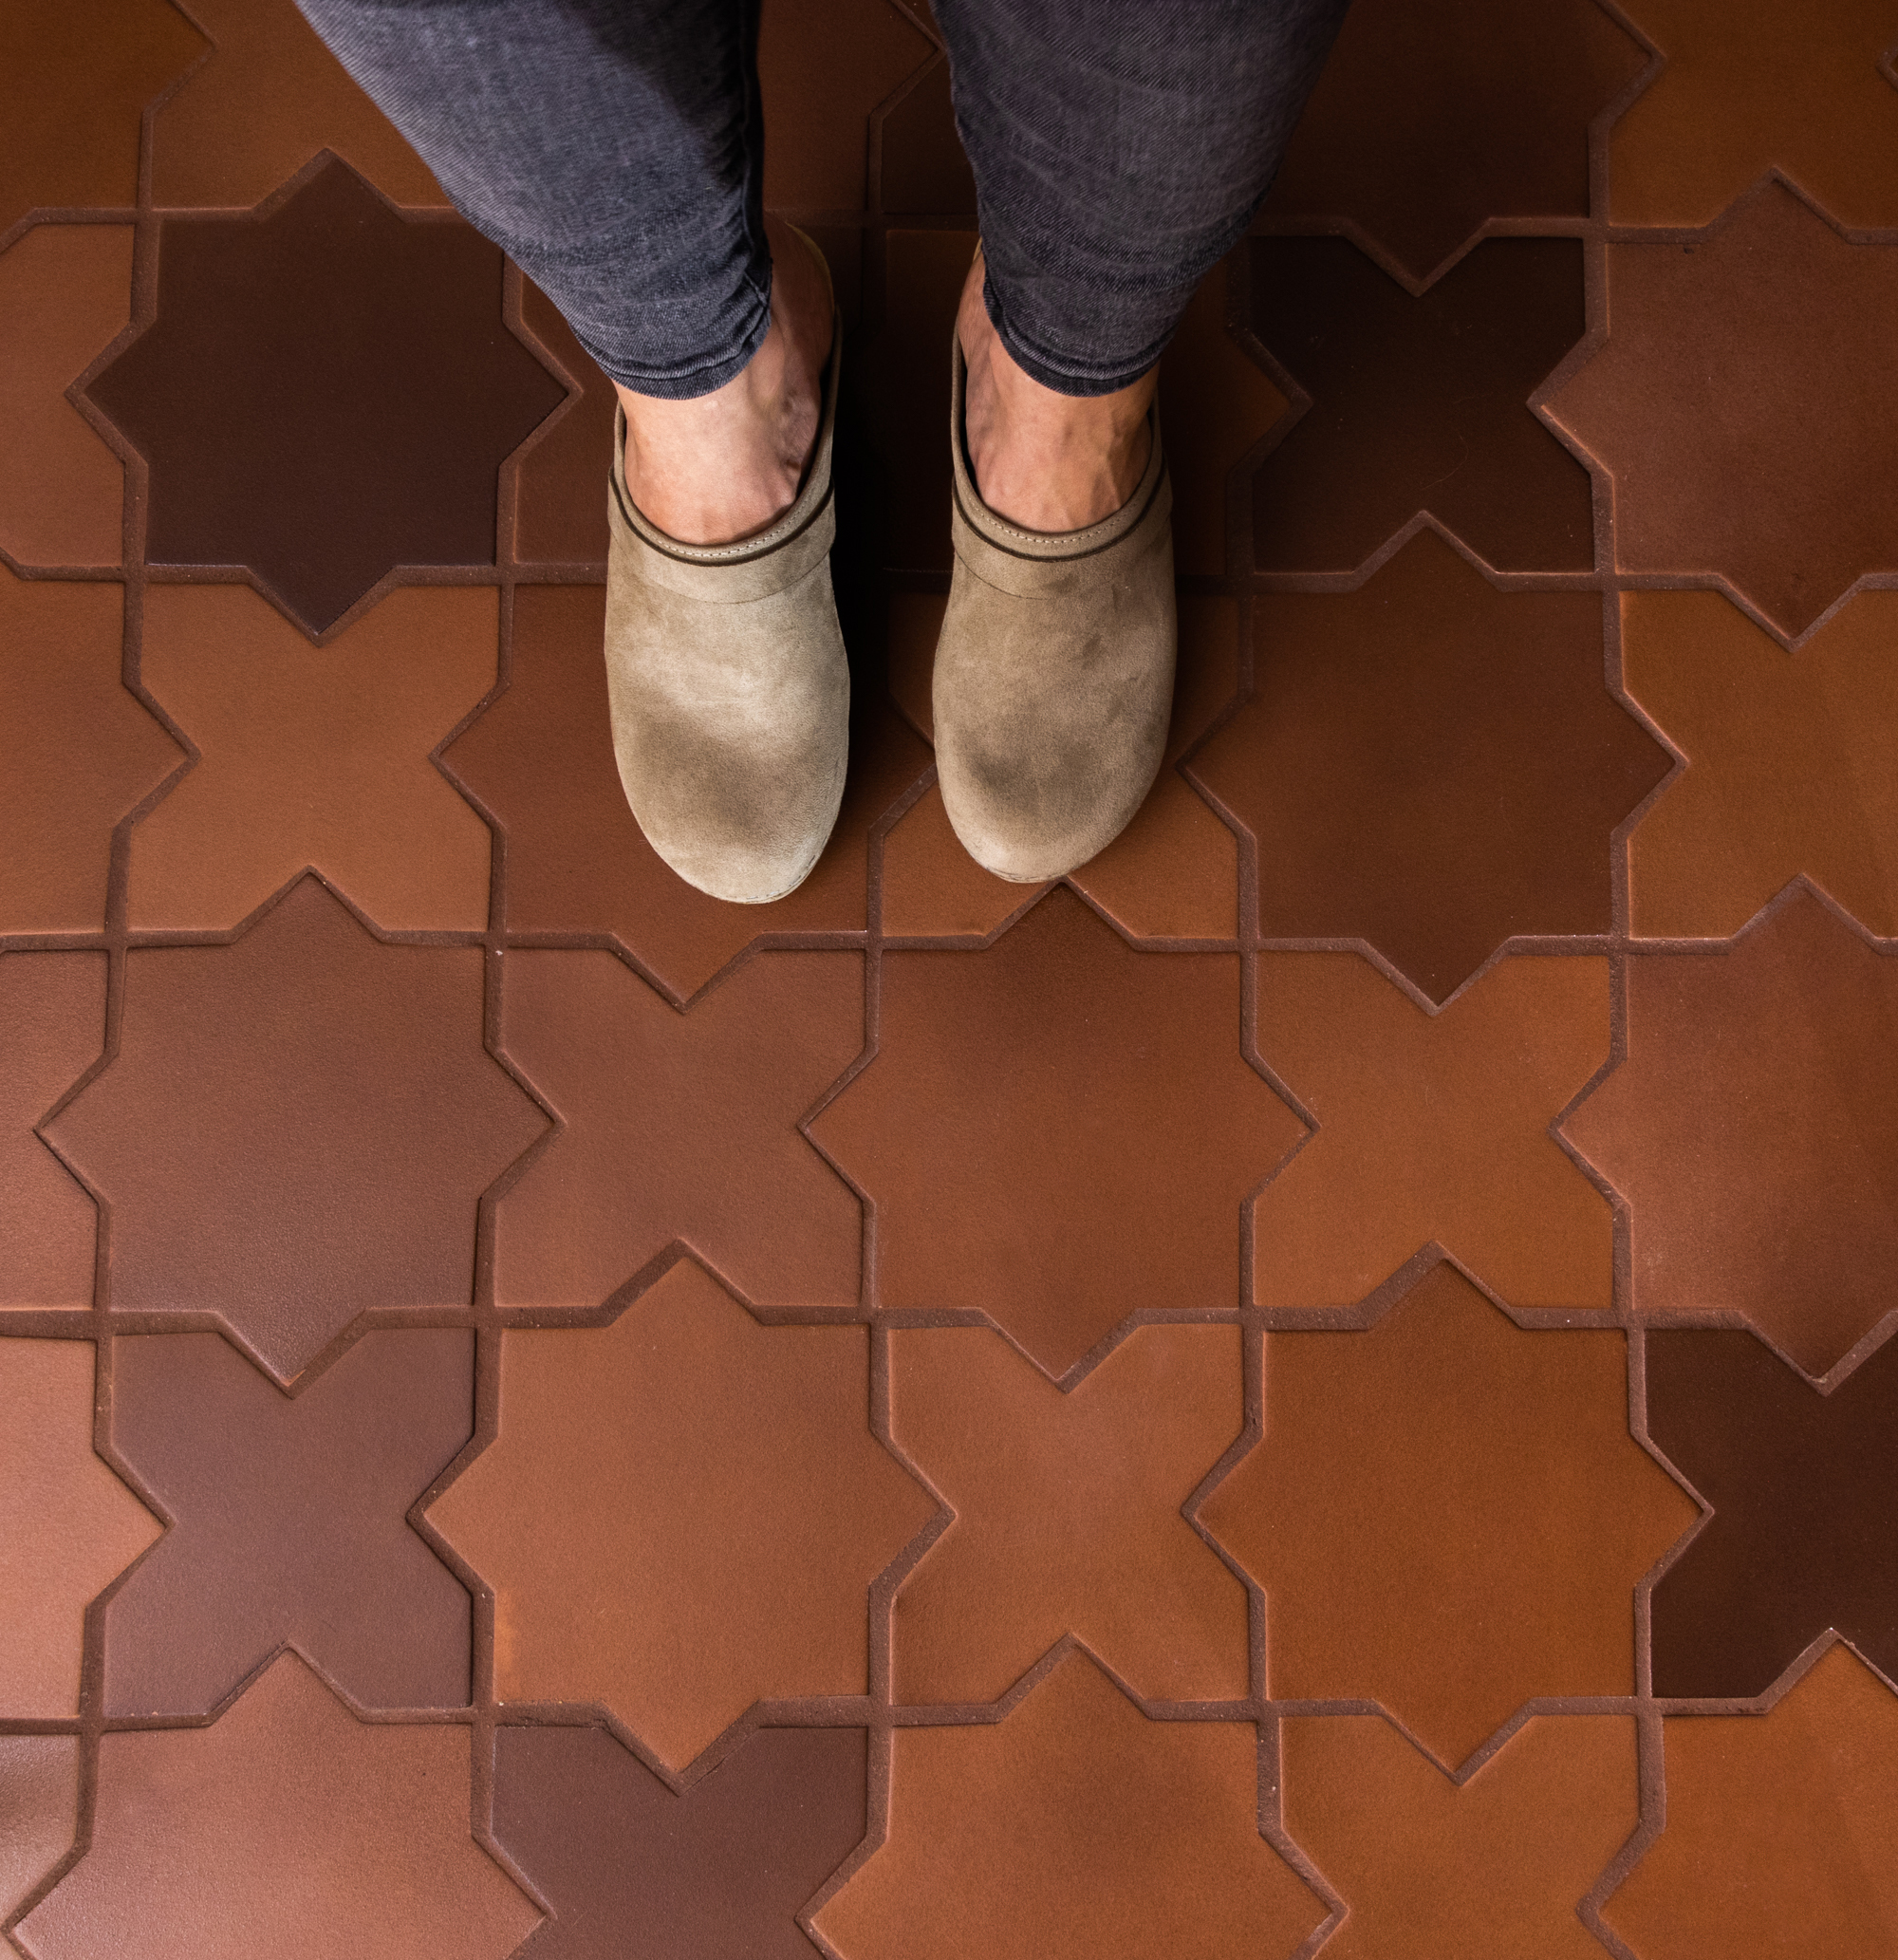 Starry eyed for this floor tile (Large Star and Cross in Antique)